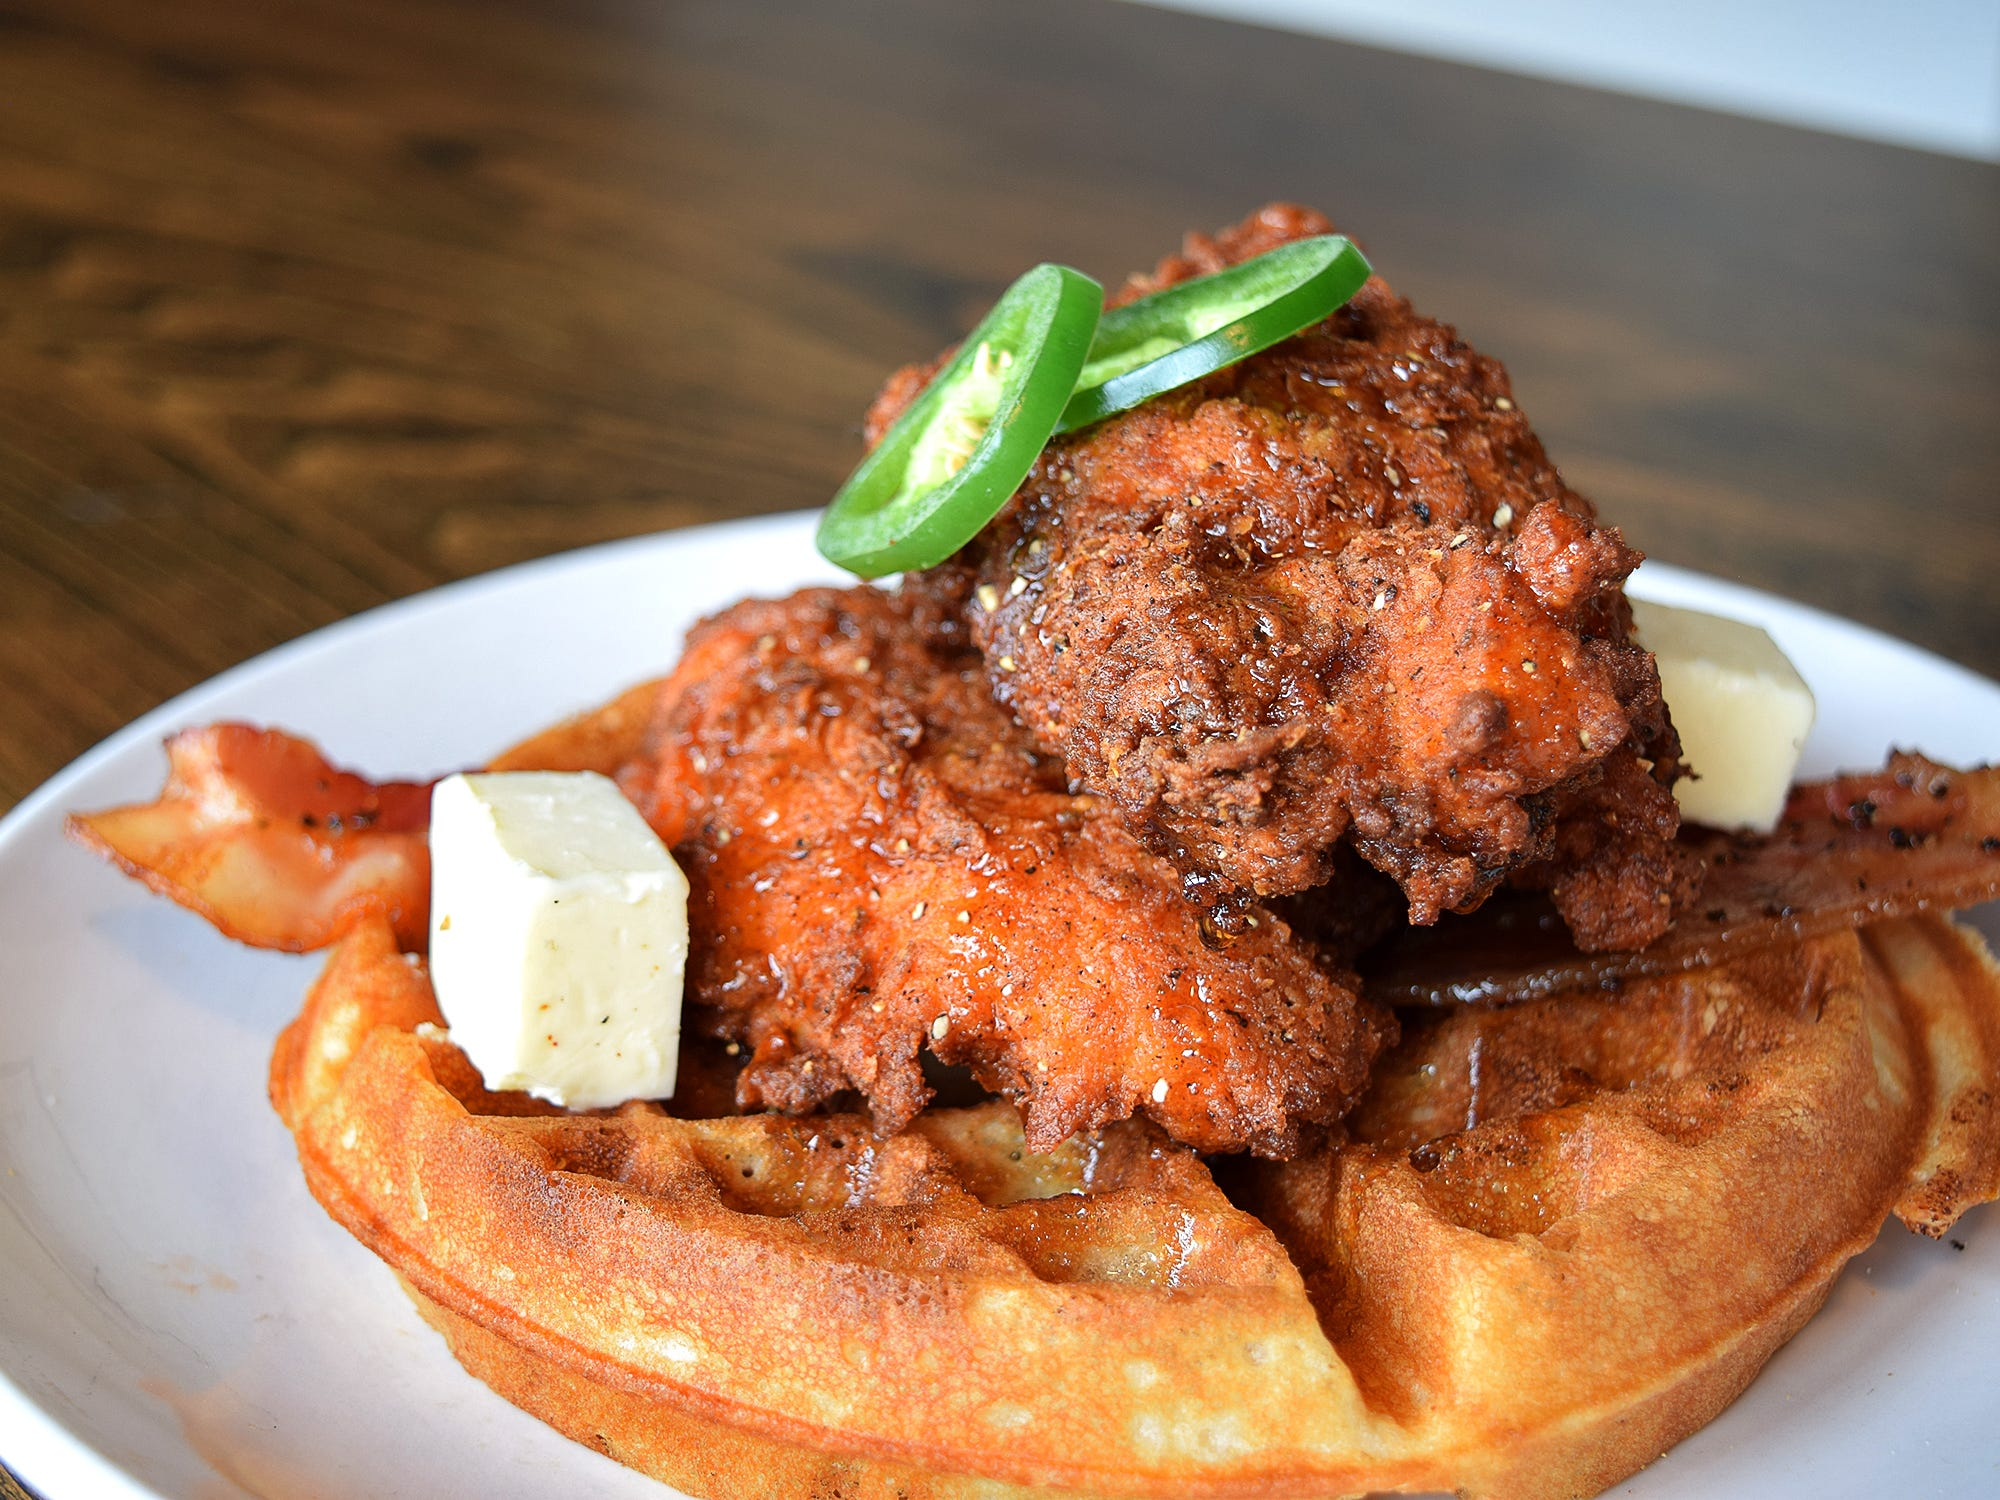 The spicy fried chicken & waffles at Thirsty Lion Gastro Pub & Grill.